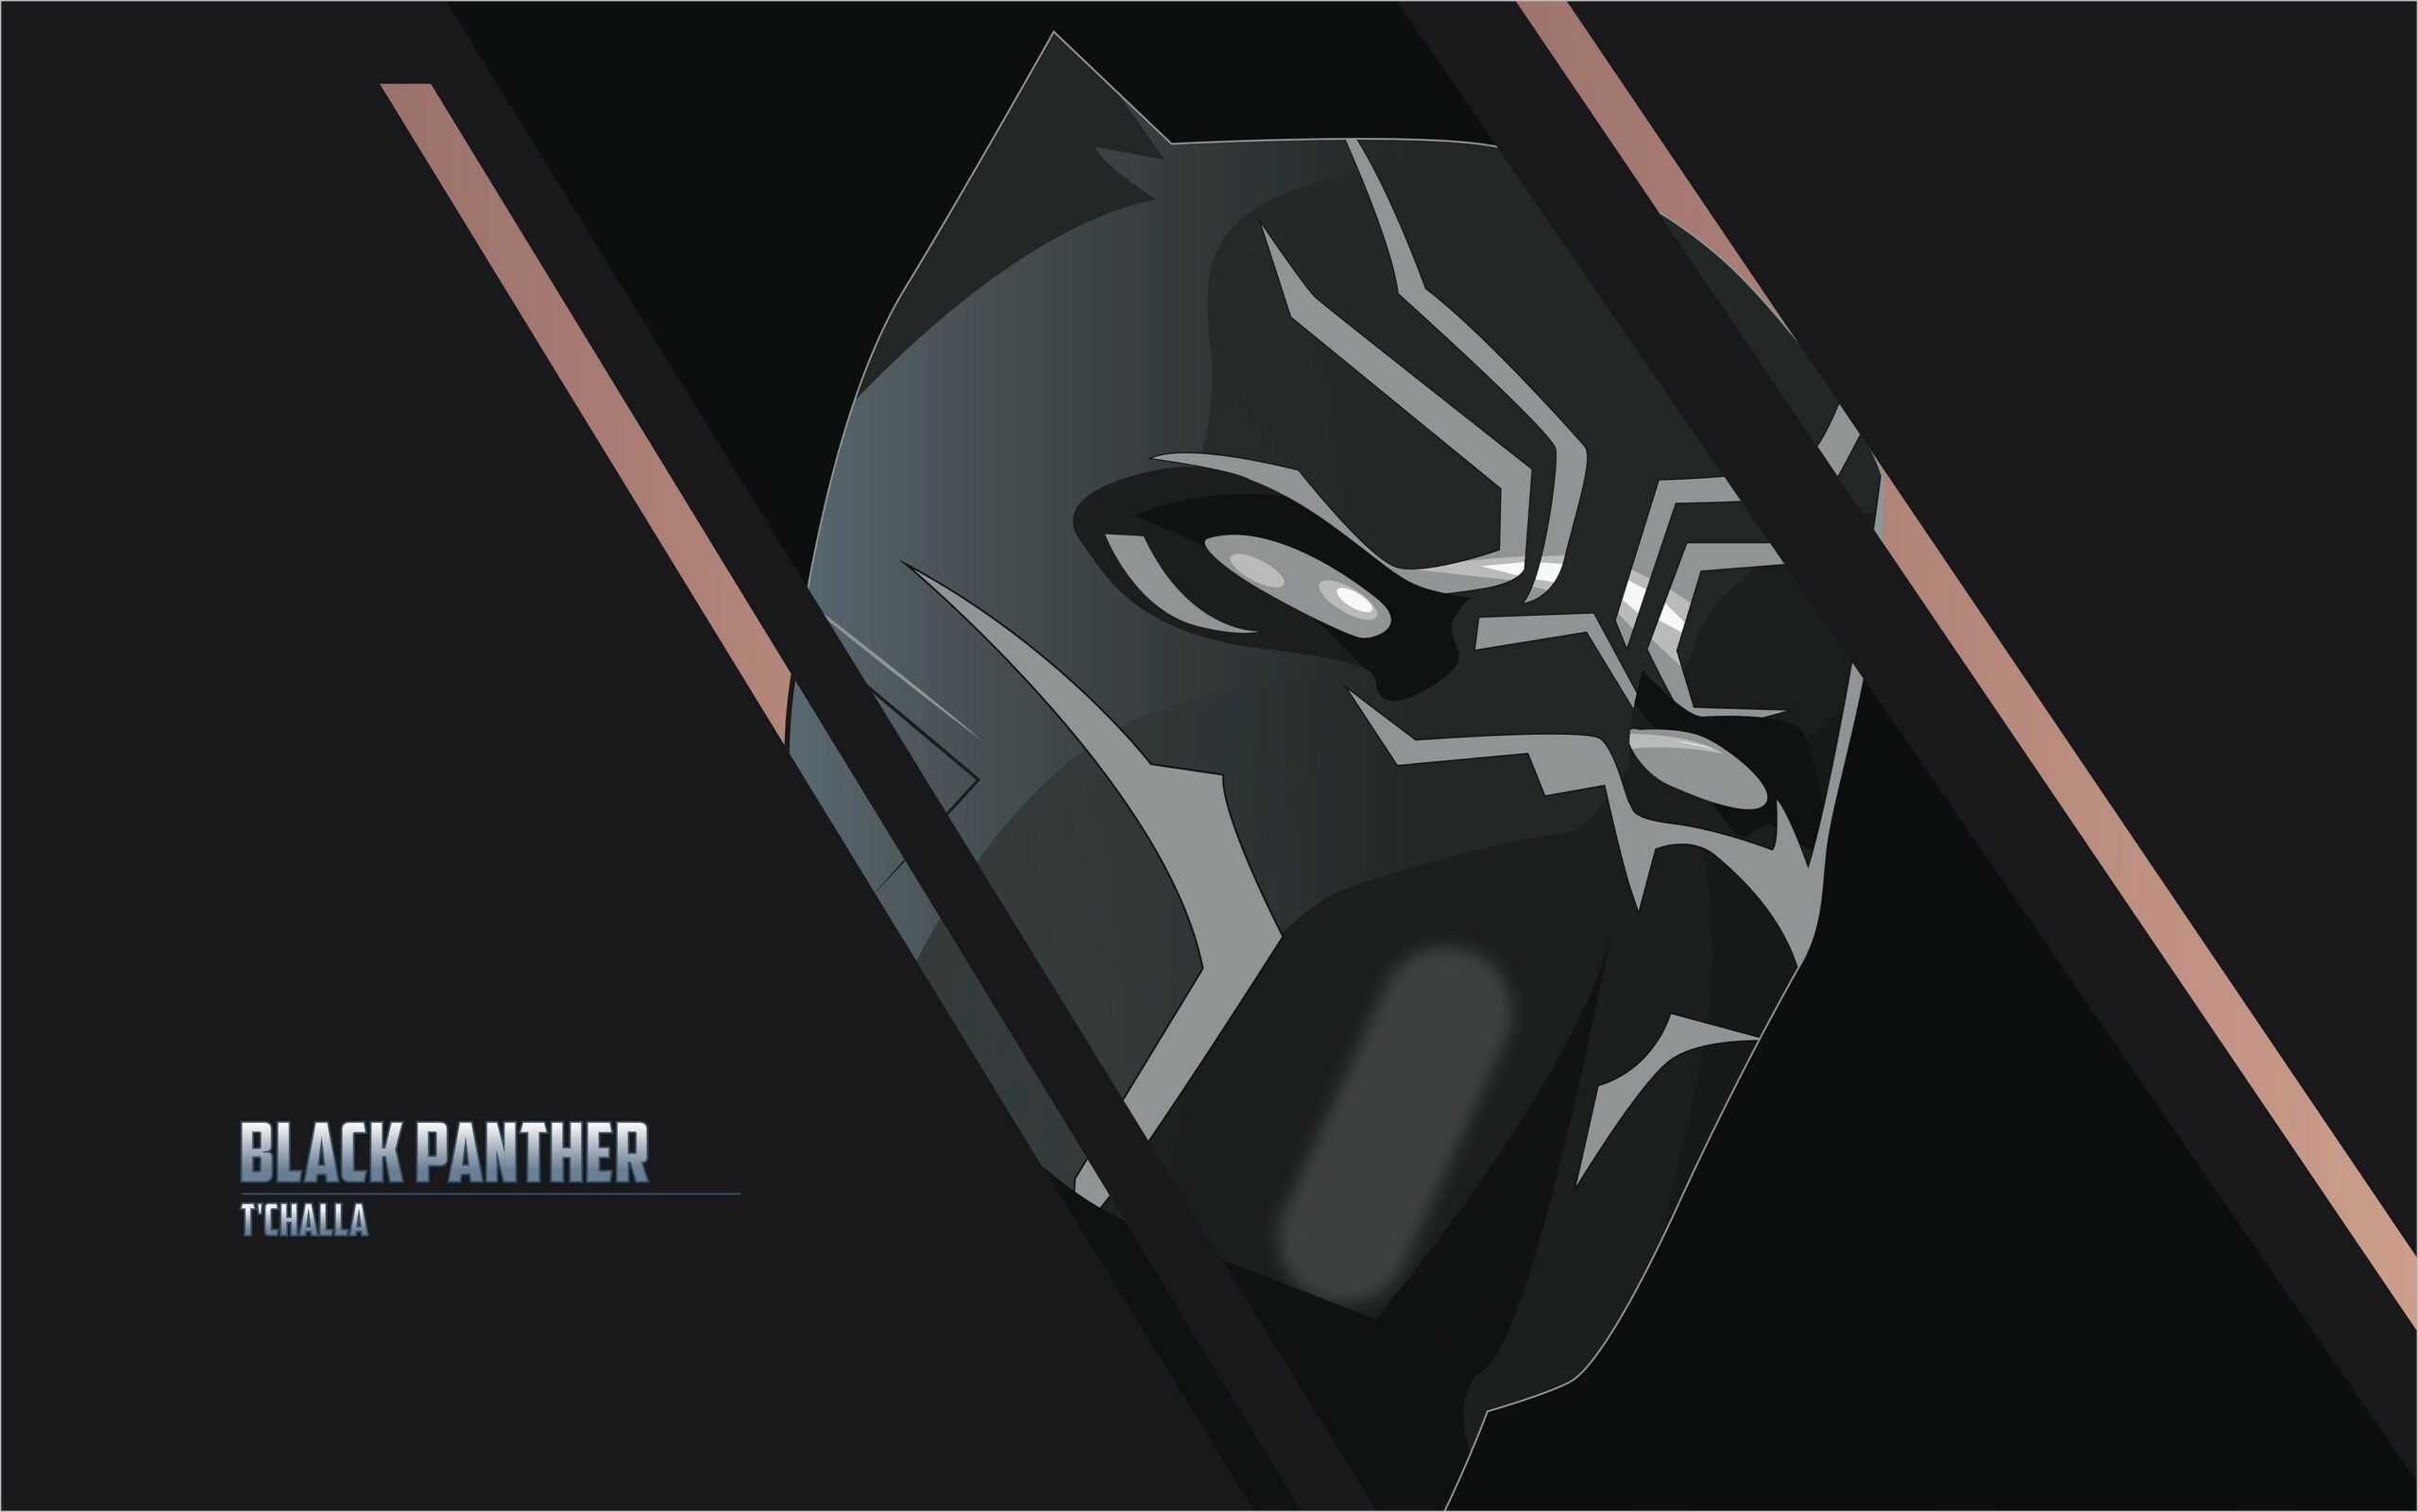 Black Panther Wallpaper 4k Pc Gallery 4k Black Panther Wallpaper Beautiful Wallpapers